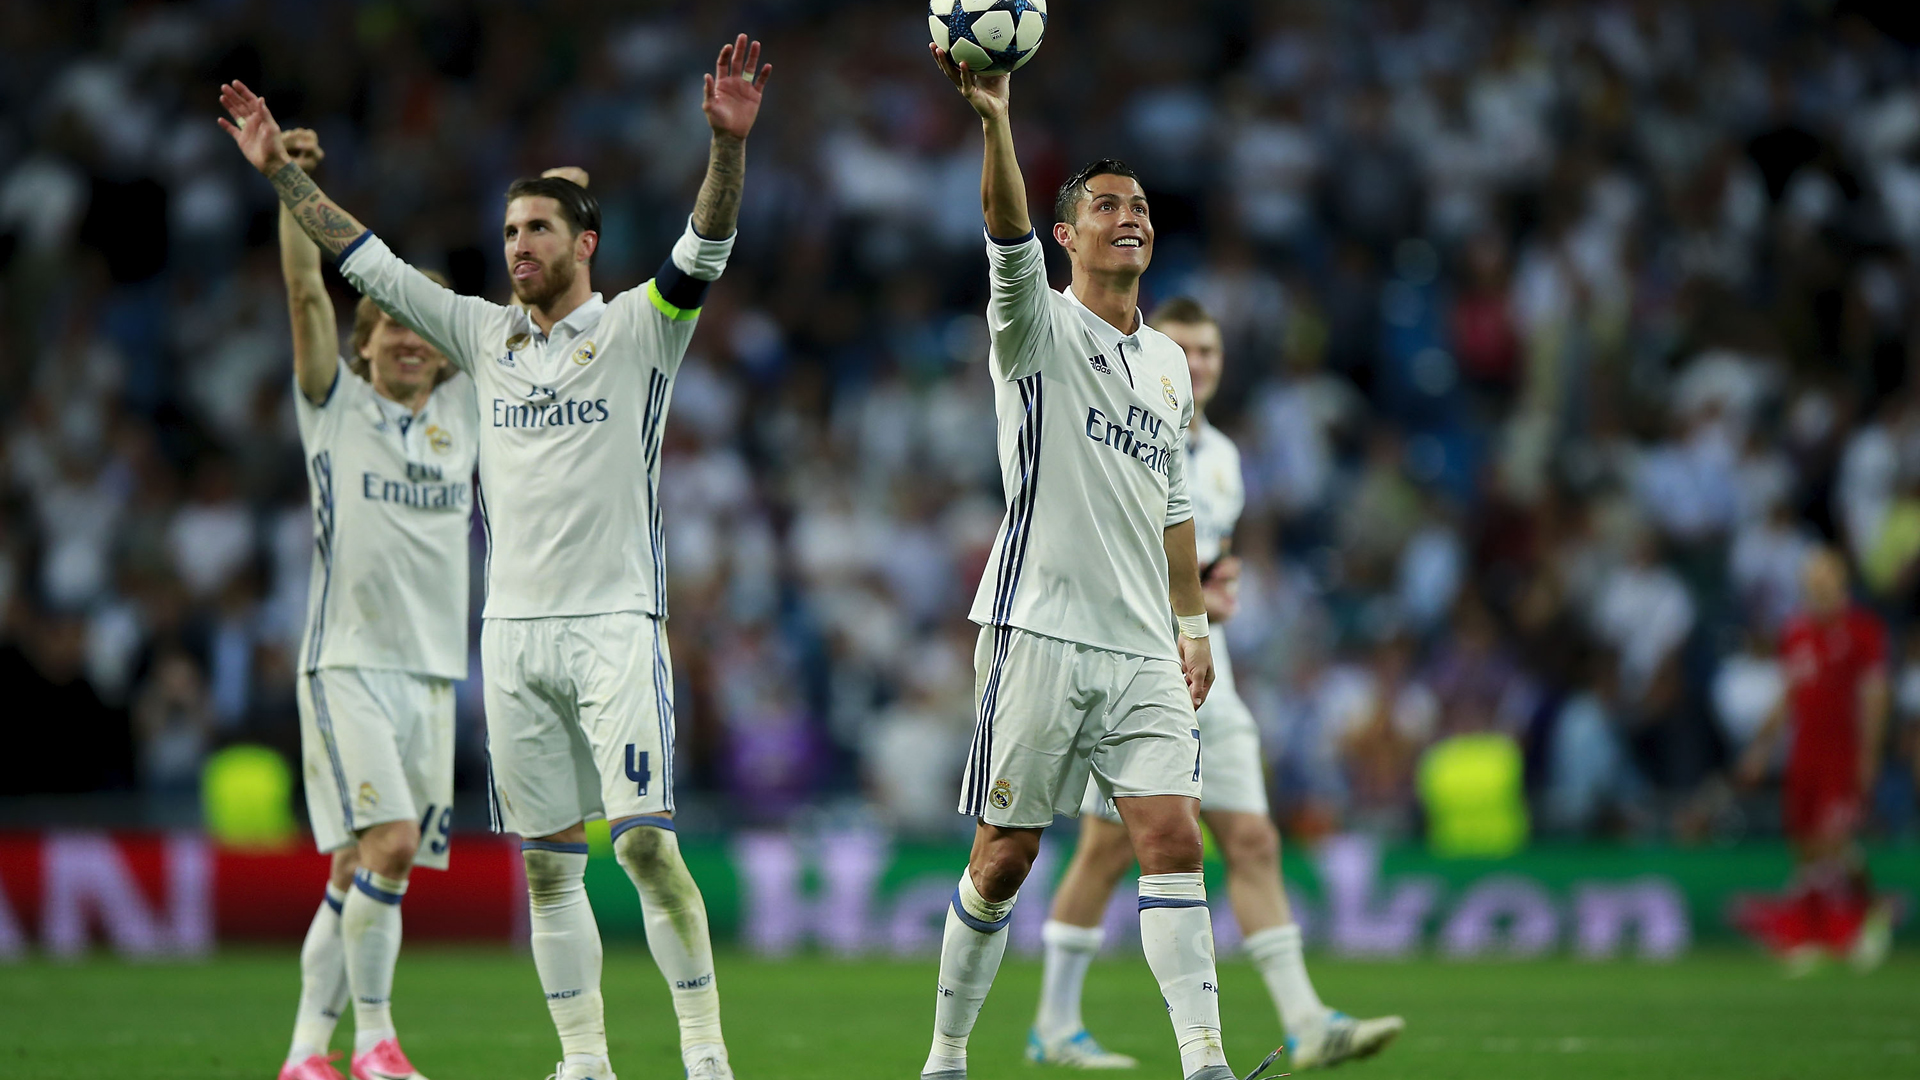 Ronaldo peaks at key moment of the season